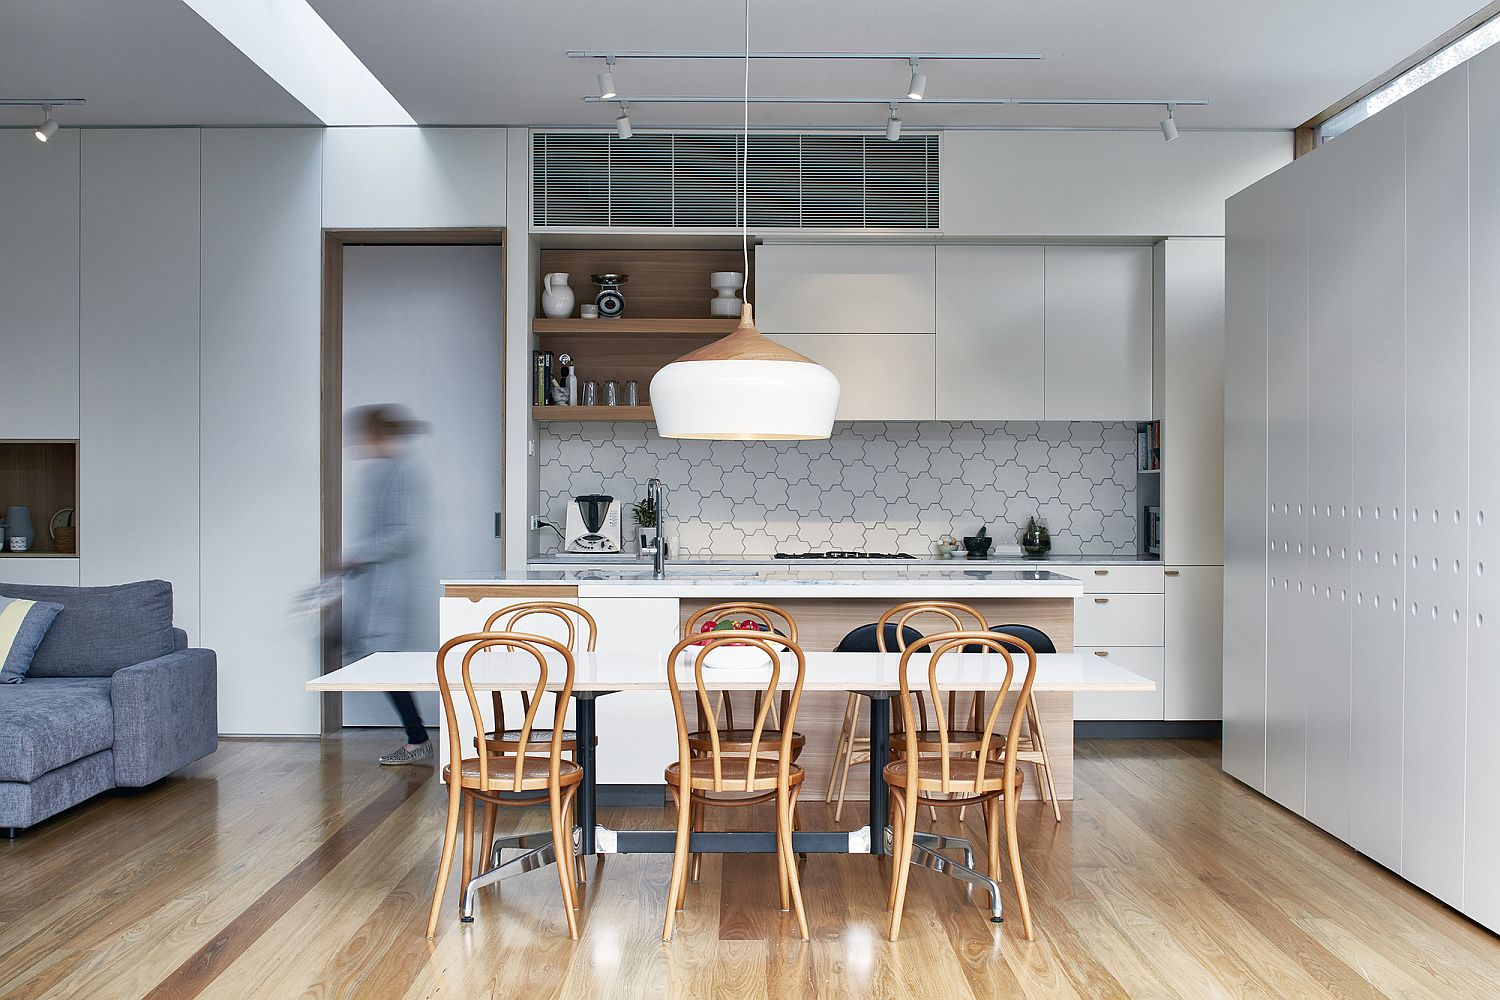 Modern kitchen with tiled backsplash and an oversized pendant above the counter